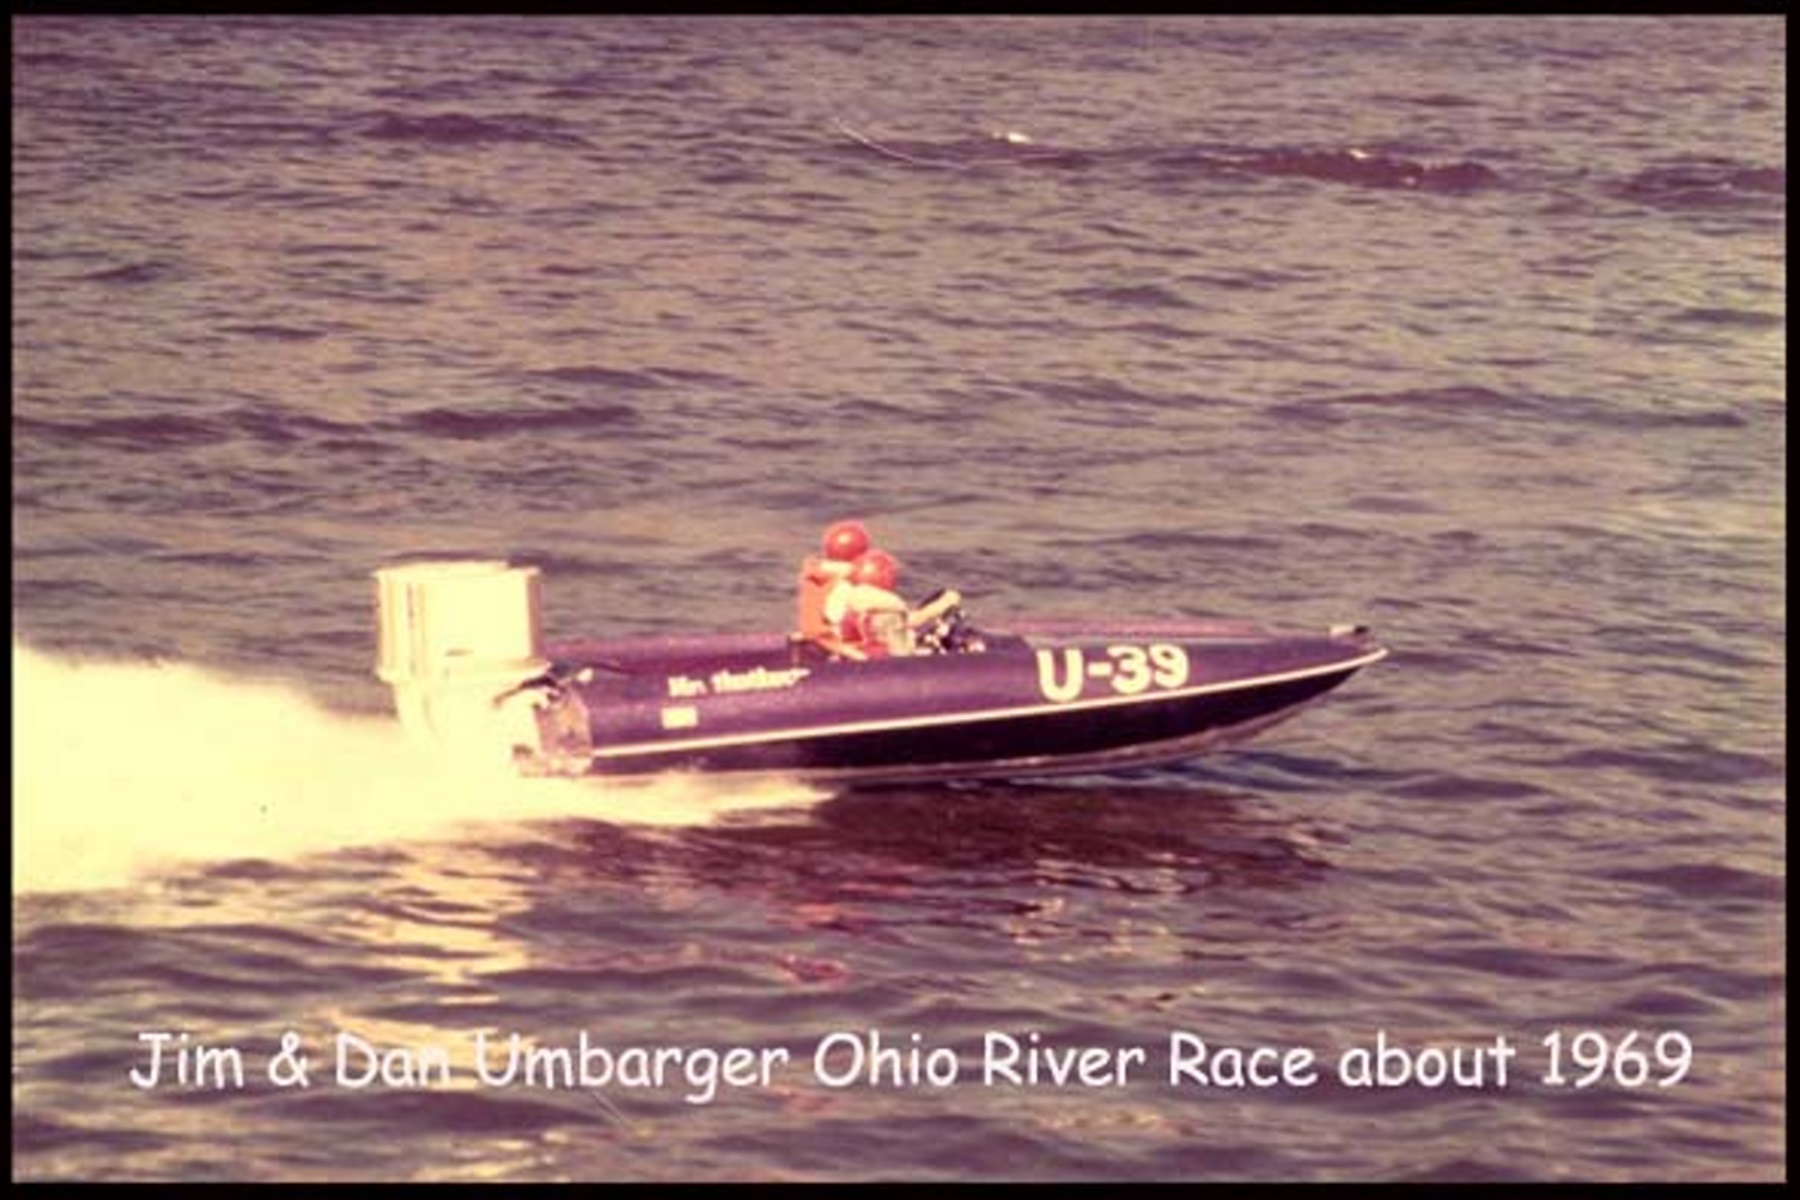 The original Victor race boat running twin Chrysler 105 engines. A national championship race boat and the catalyst for Hustler Sport Boats.